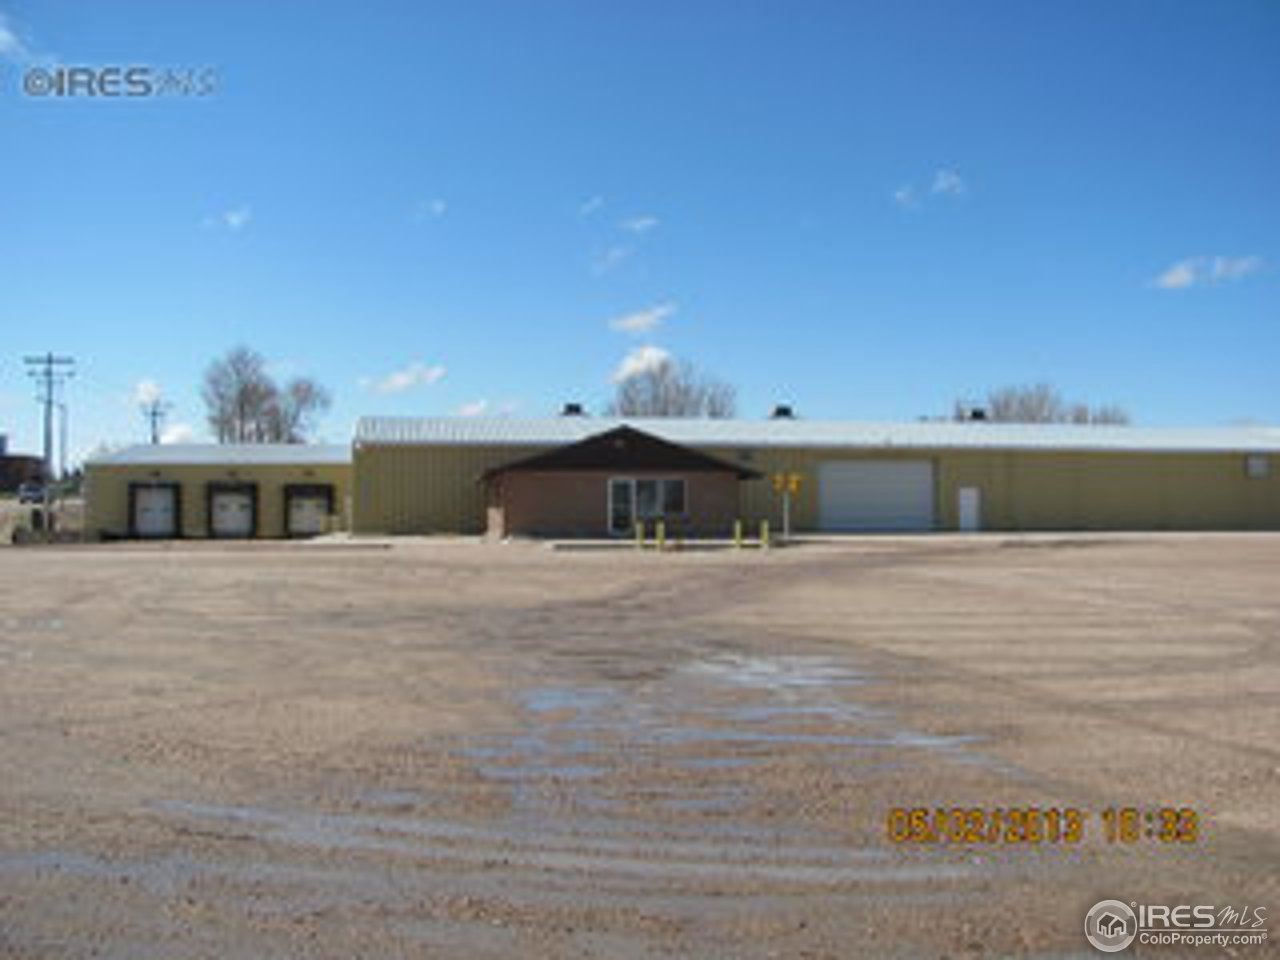 20974 County Road S, Fort Morgan, CO 80701